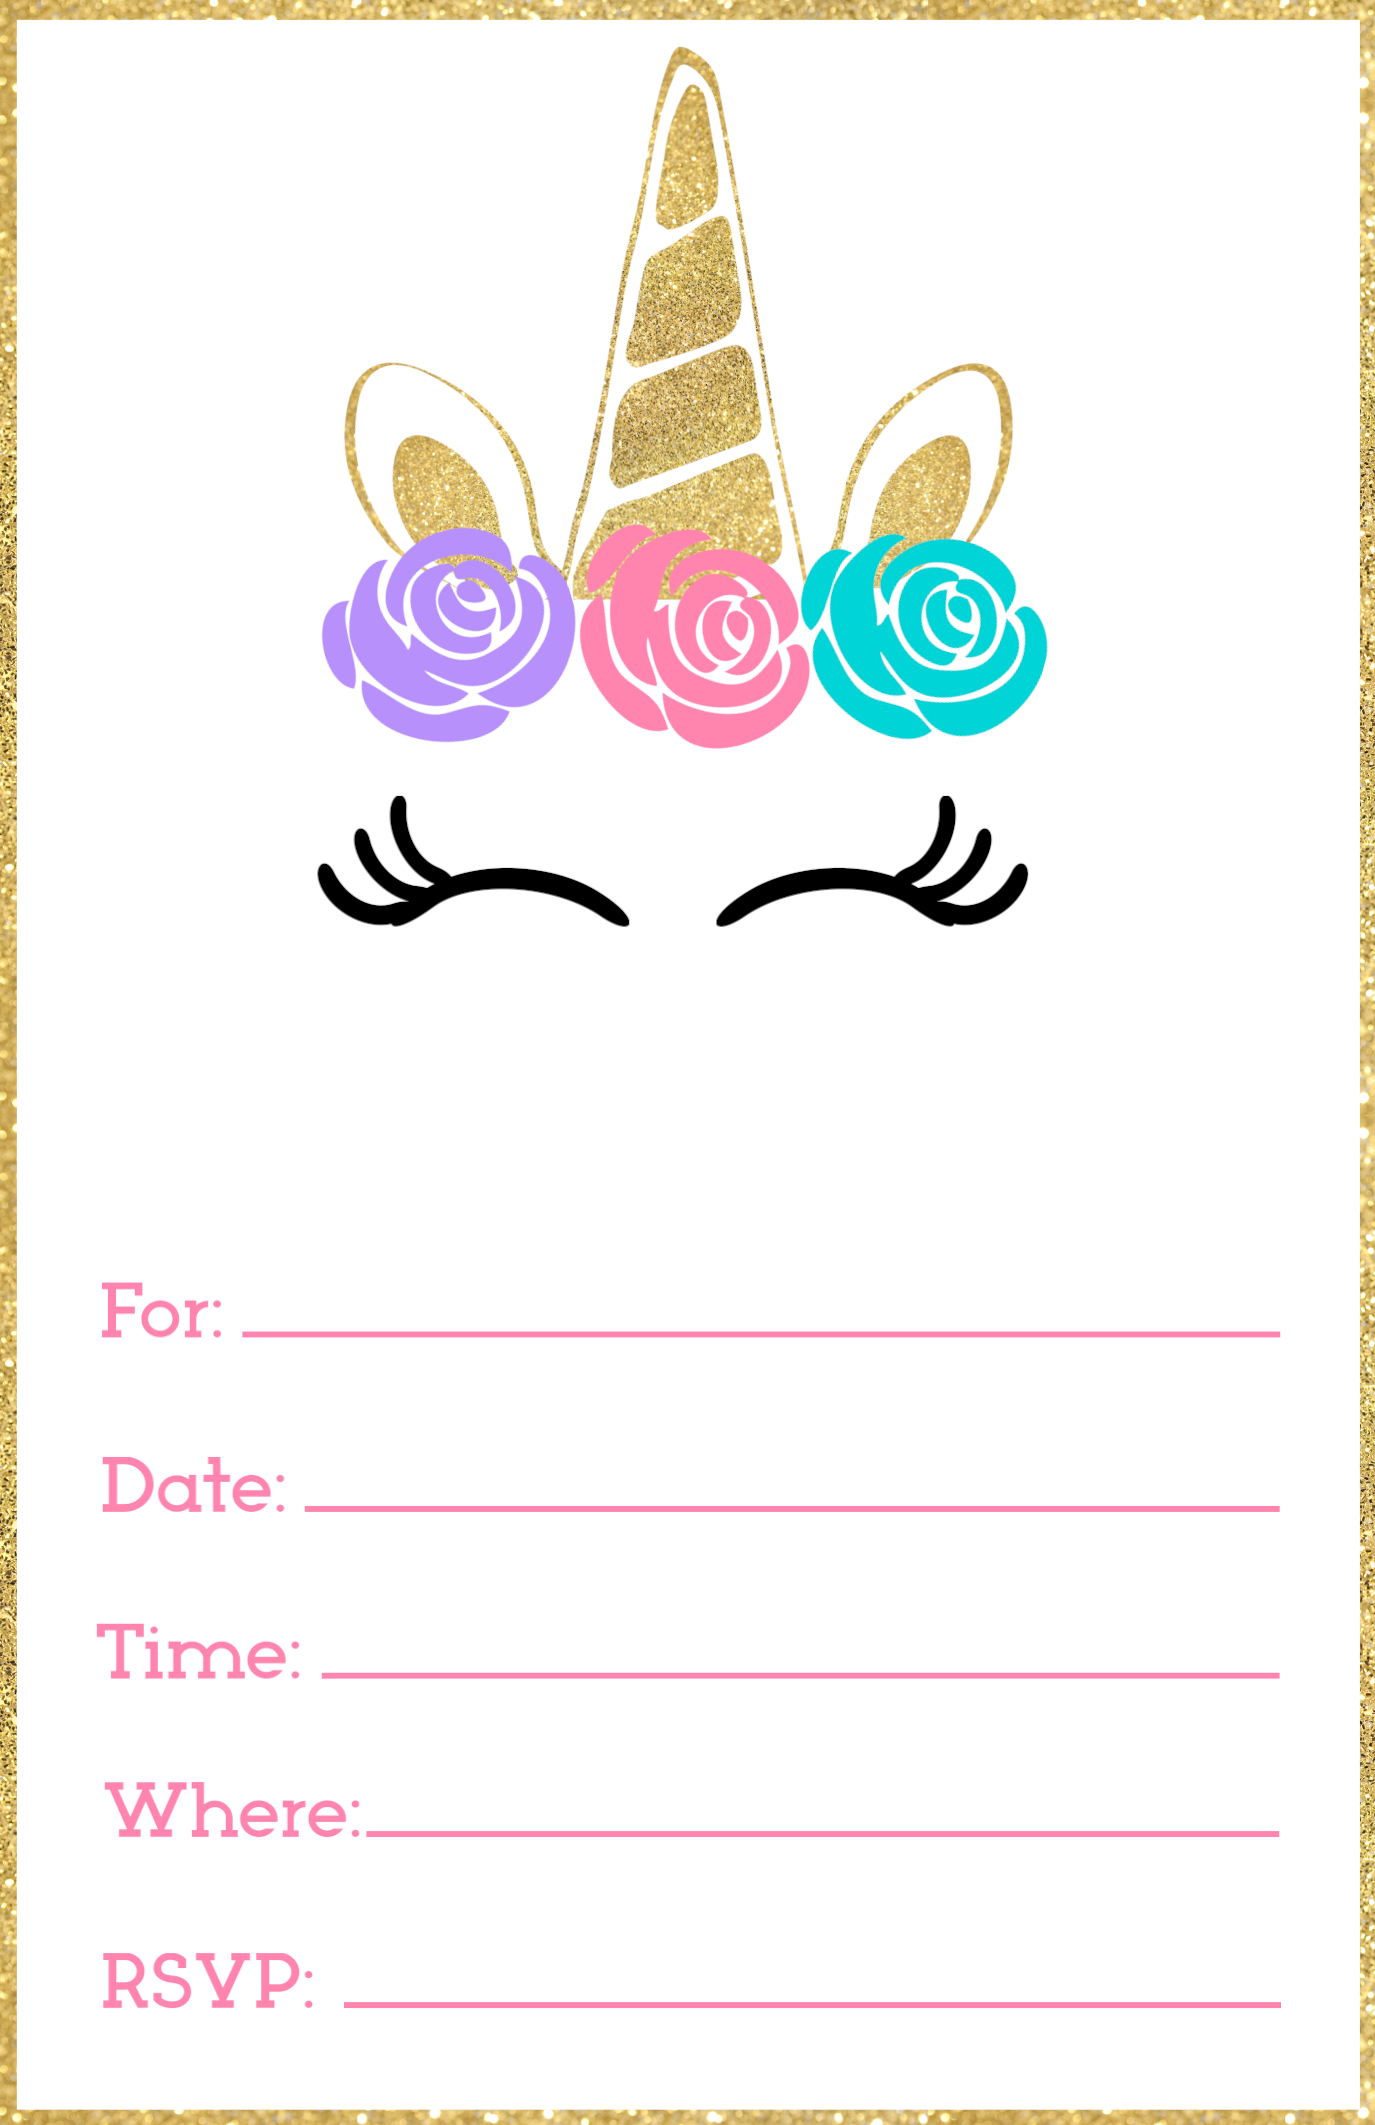 Comprehensive image intended for unicorn invitations printable